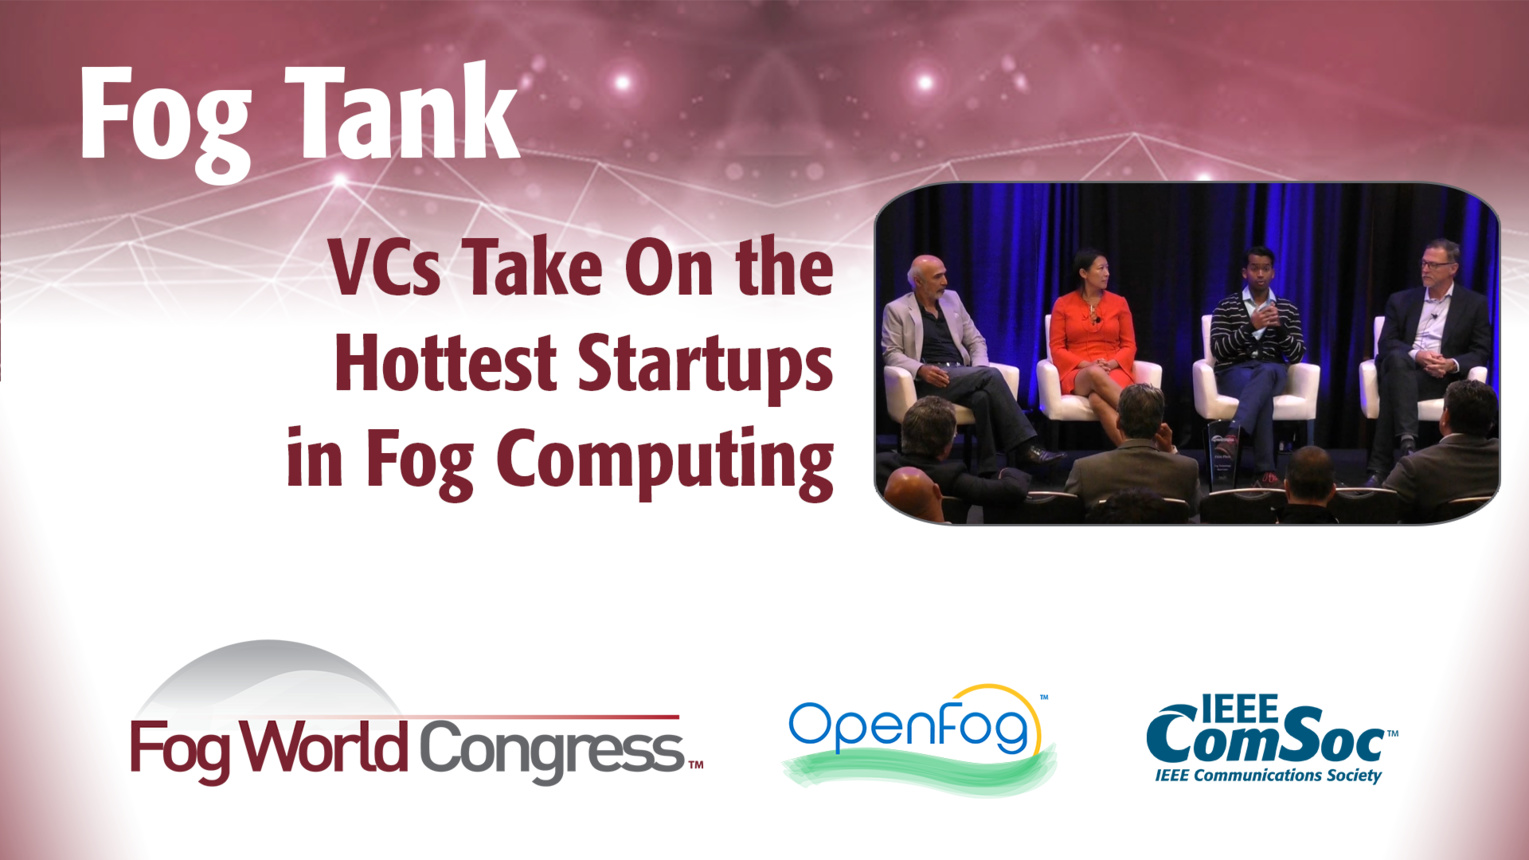 Fog Tank: Venture Capitalists Take On the Hottest Startups in Fog Computing - Fog World Congress